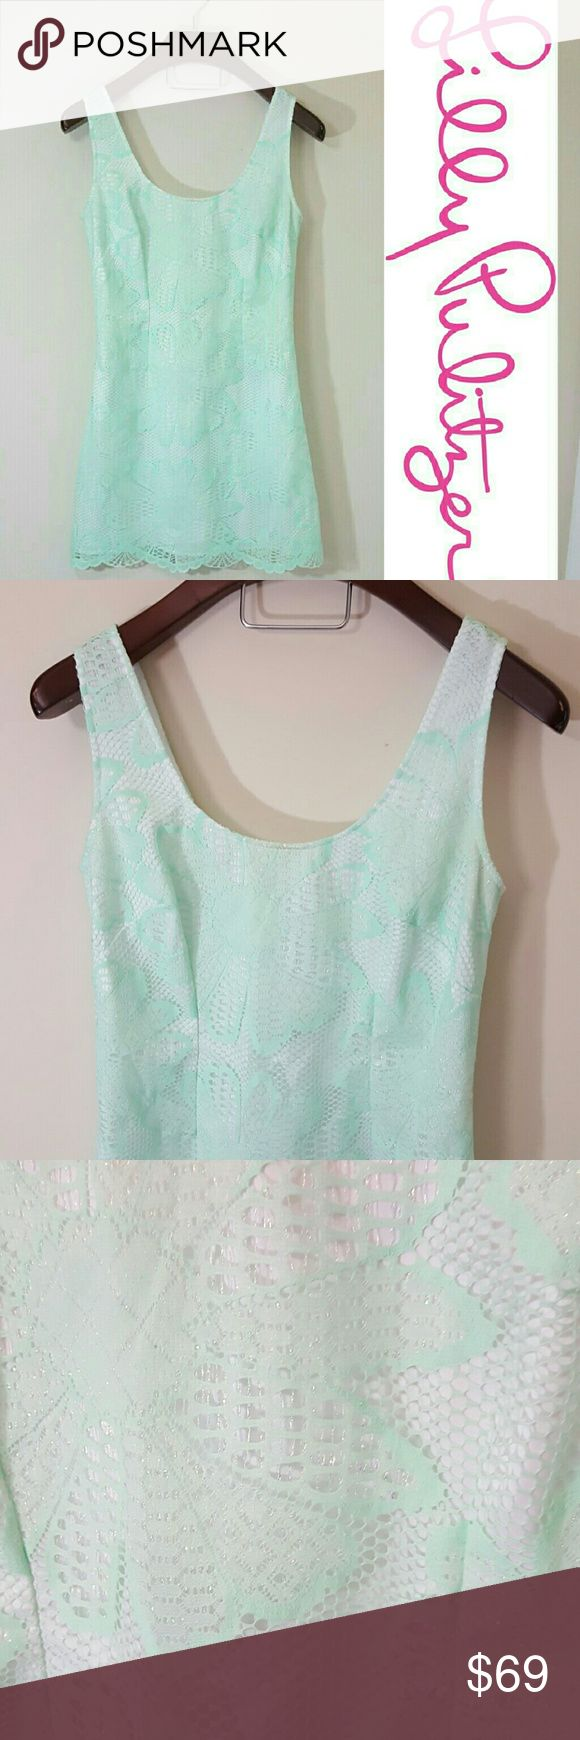 Lilly Pulitzer sparkle lace Lonnie dress!! In excellent condition! Gorgeous Lily Pulitzer dress. Size 10. Beautiful sparkle detail. Size tag (10) is removed. Bra strap snaps to hide bra straps under shoulders :)  Bundle up! Offers always welcome:) Lilly Pulitzer Dresses